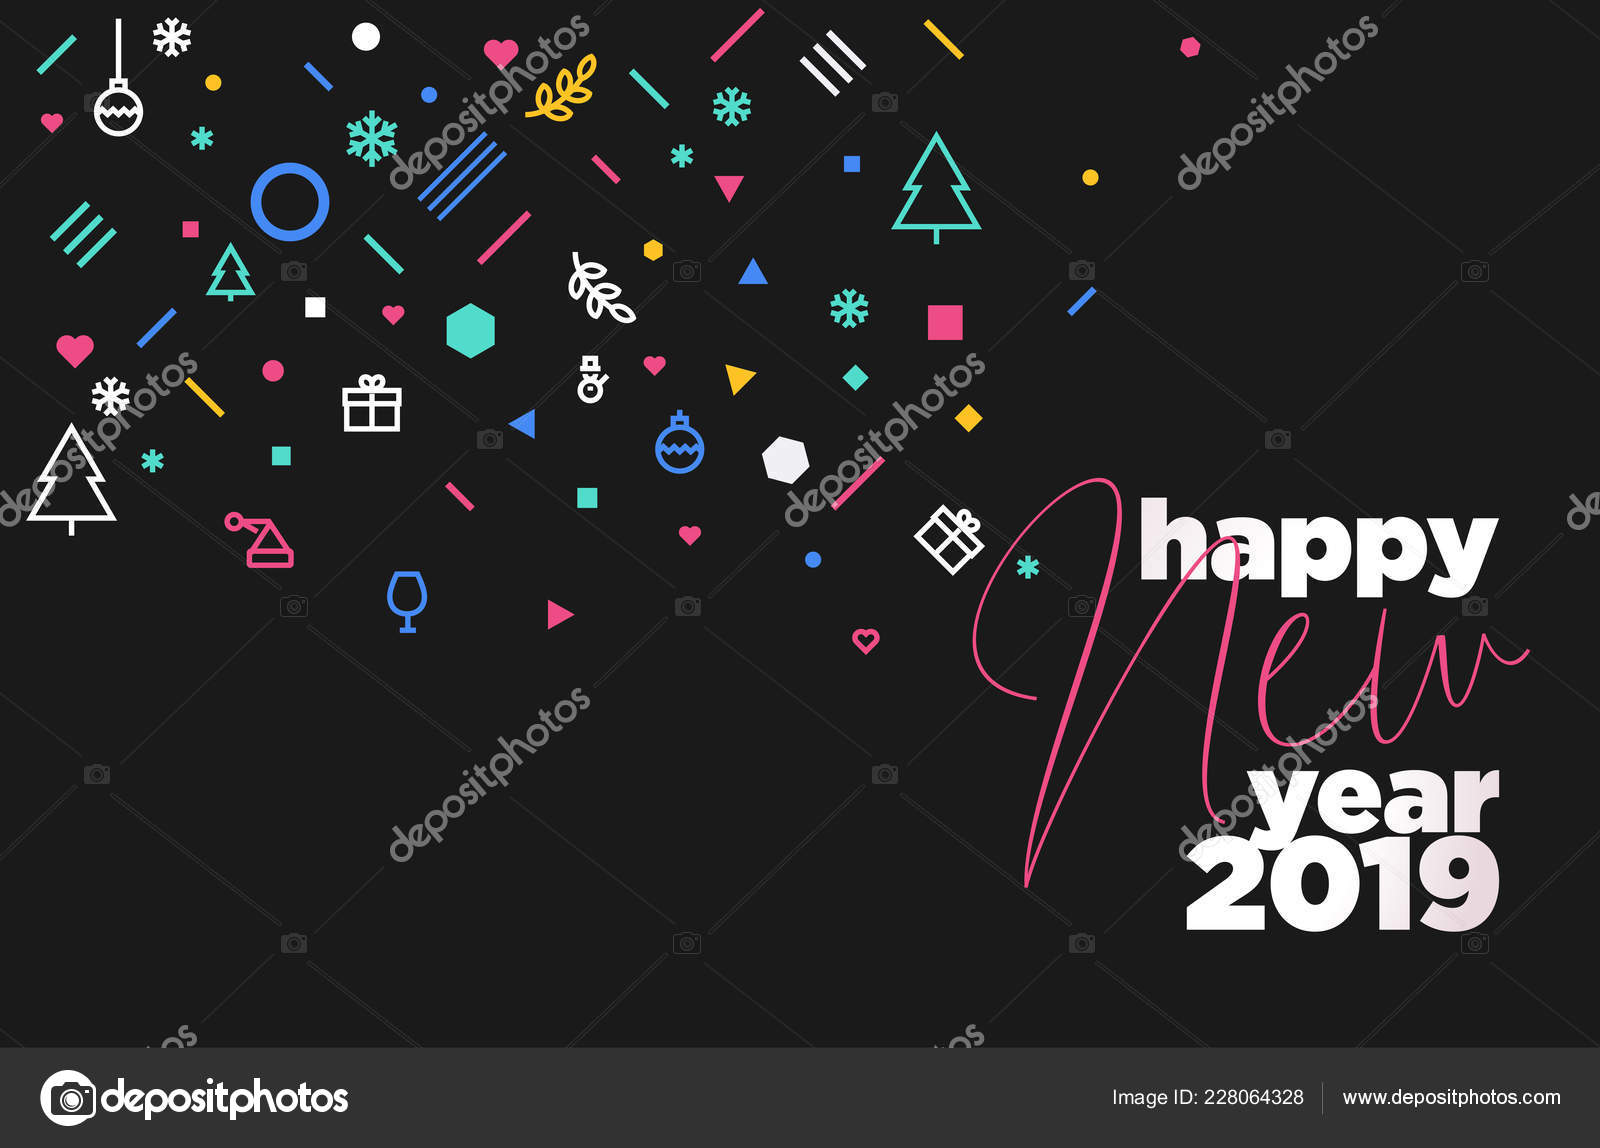 happy new year 2019 vector illustration concept for background greeting card website and mobile website banner party invitation card social media